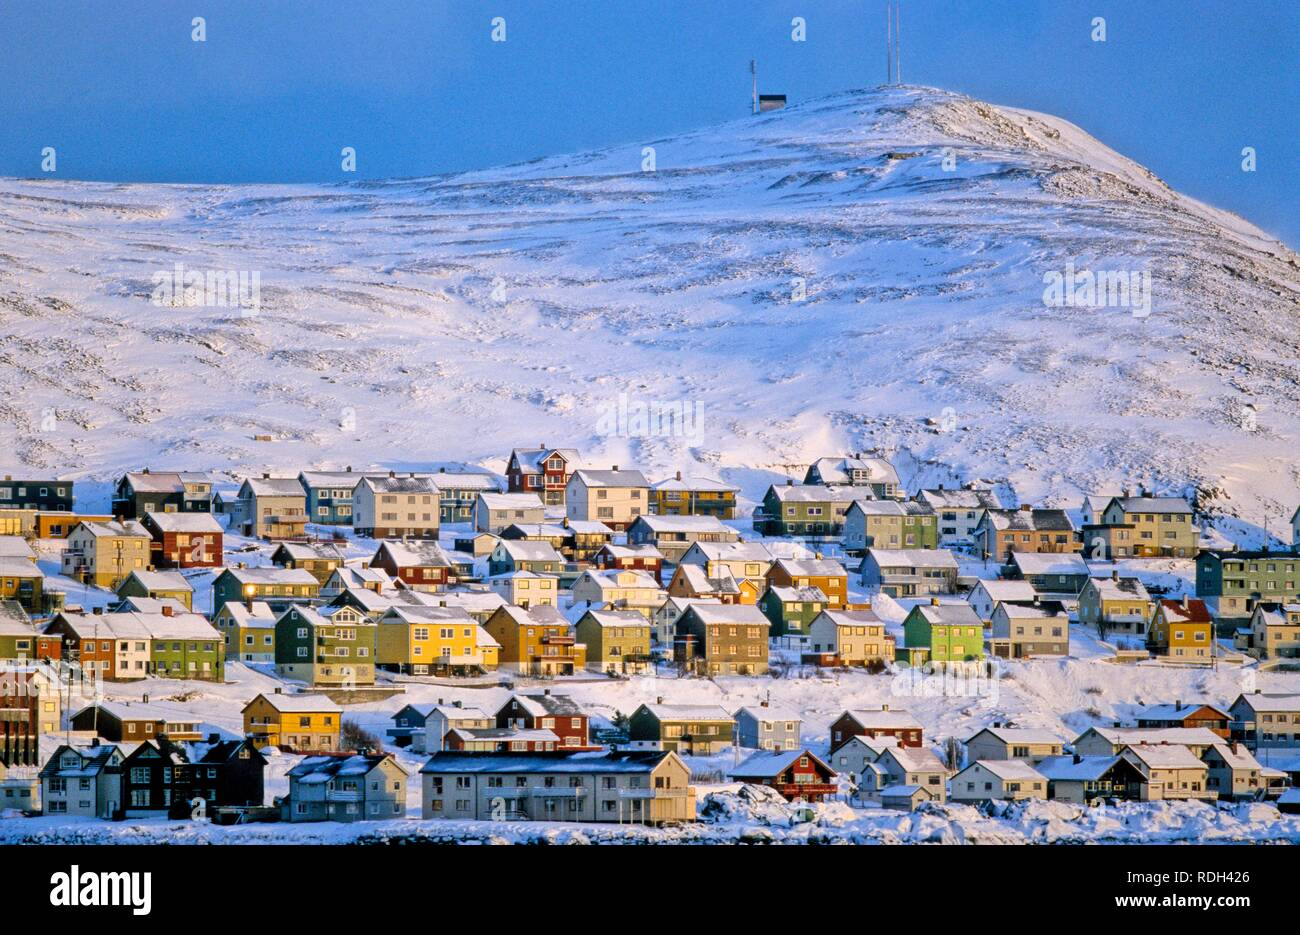 Village of Honningsvag on North Cape island of Mageroya, Norway, Europe - Stock Image